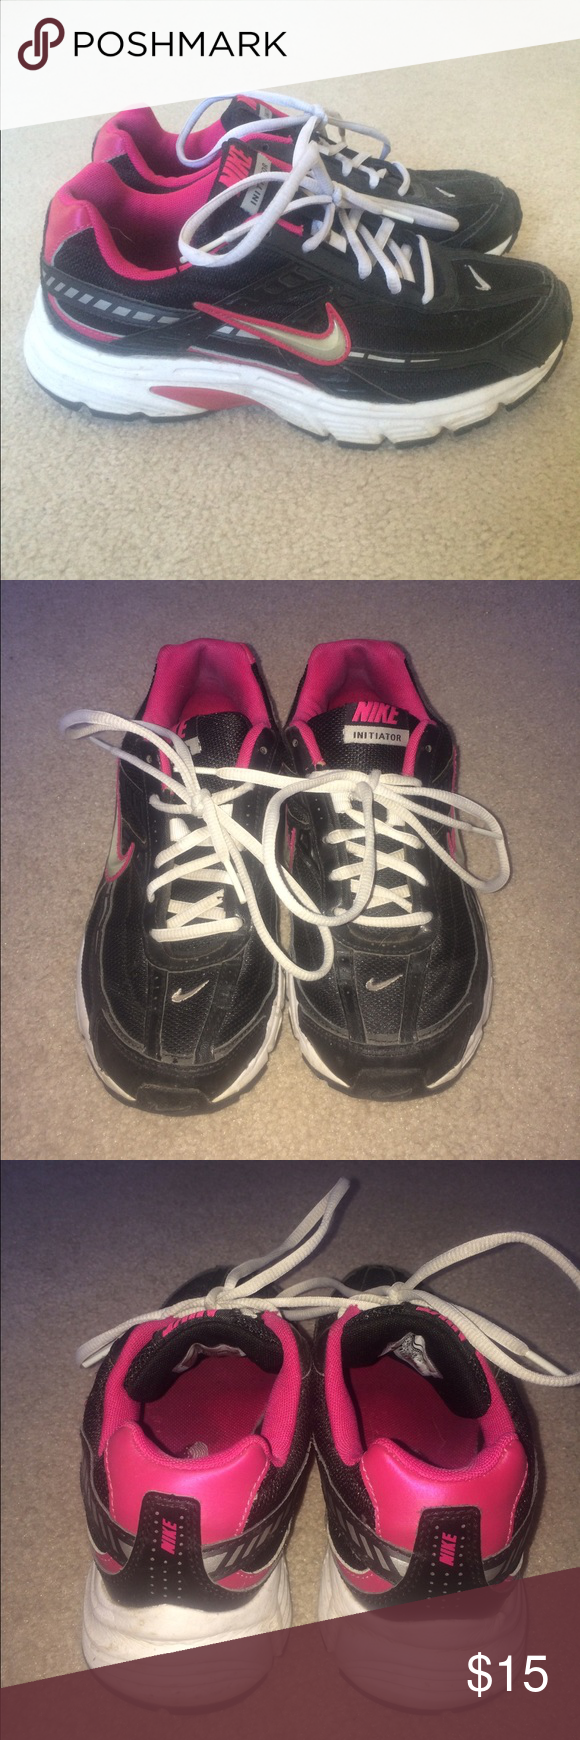 Black & pink nikes Used nikes great condition Nike Shoes Athletic Shoes